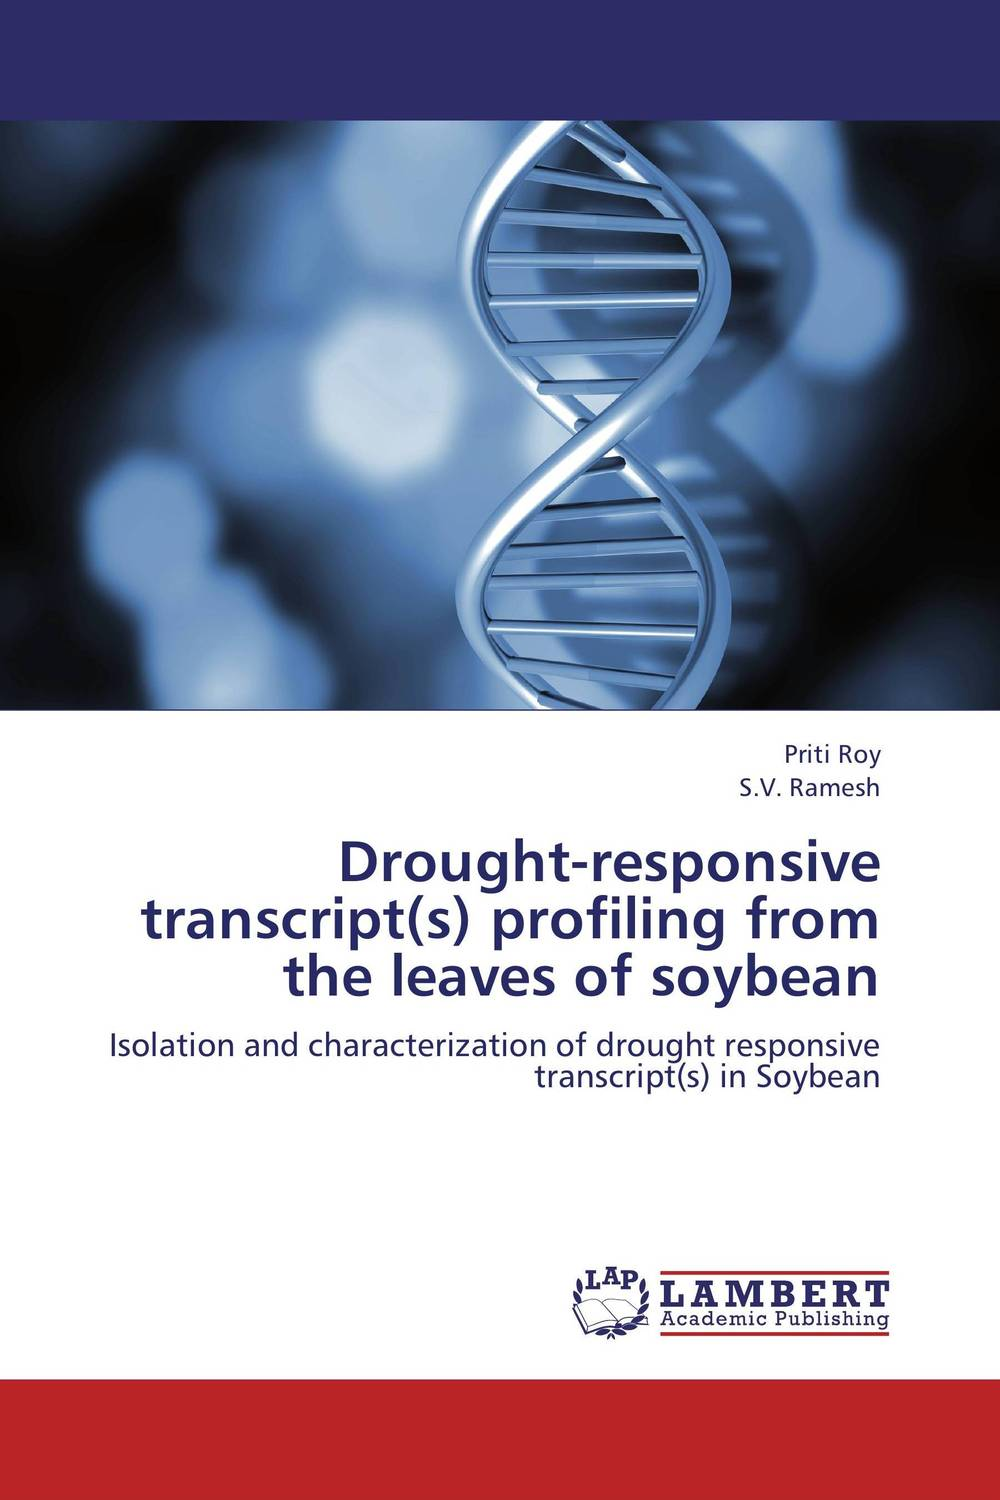 Drought-responsive transcript(s) profiling from the leaves of soybean eman ibrahim el sayed abdel wahab molecular genetic characterization studies of some soybean cultivars